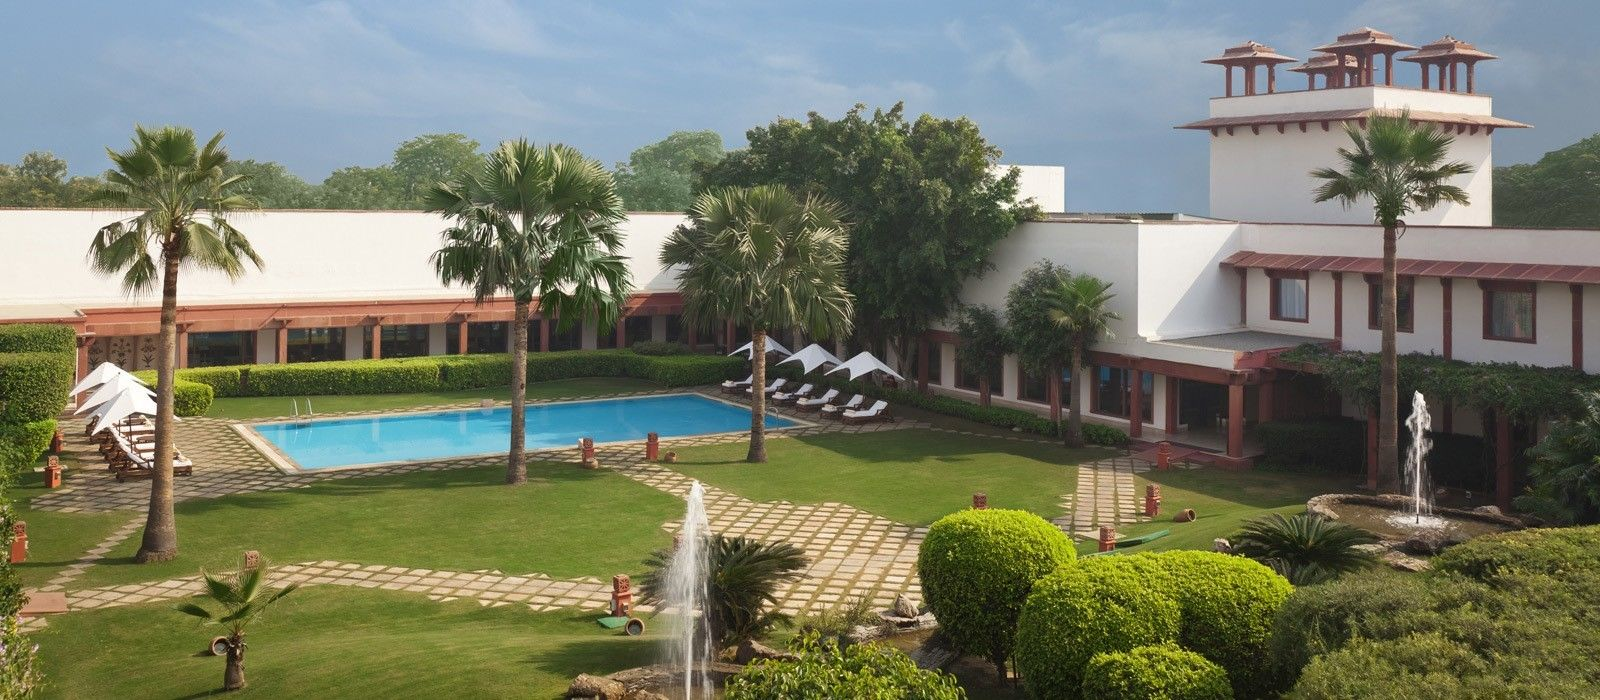 Hotel The Trident Agra North India